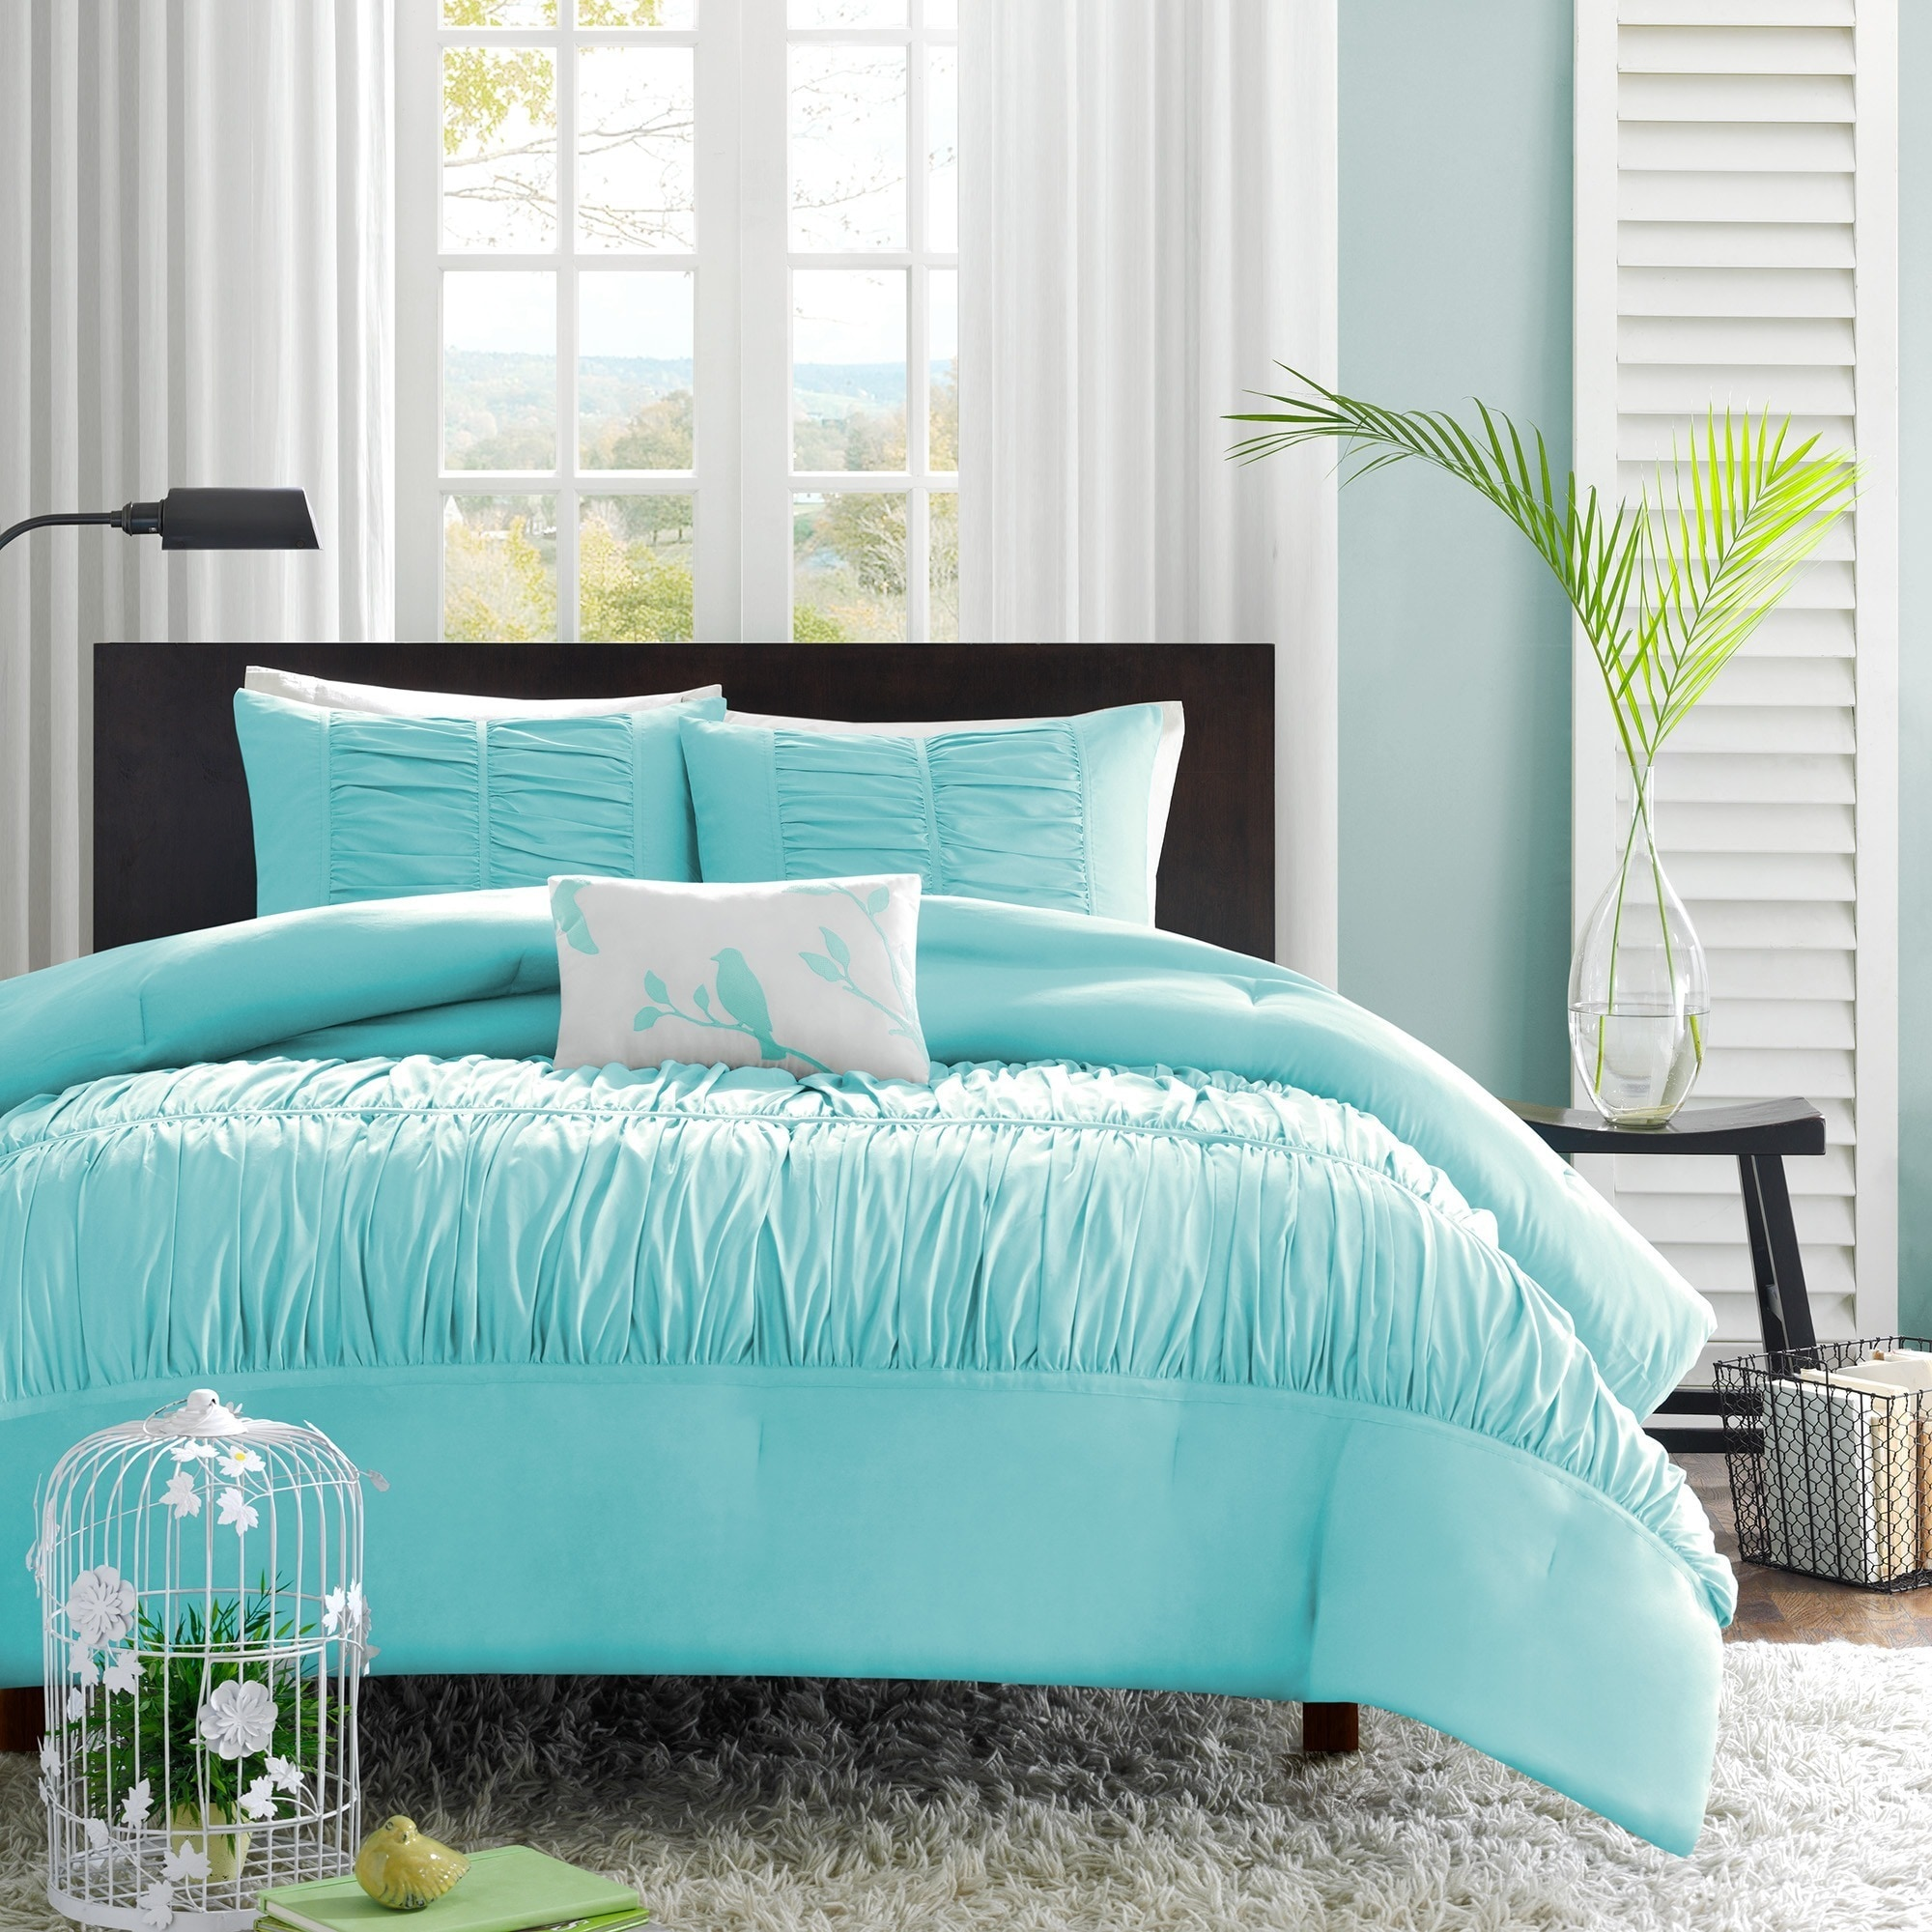 lily intelligent free today shipping bed overstock bath comforter product set design bedding bcad aqua